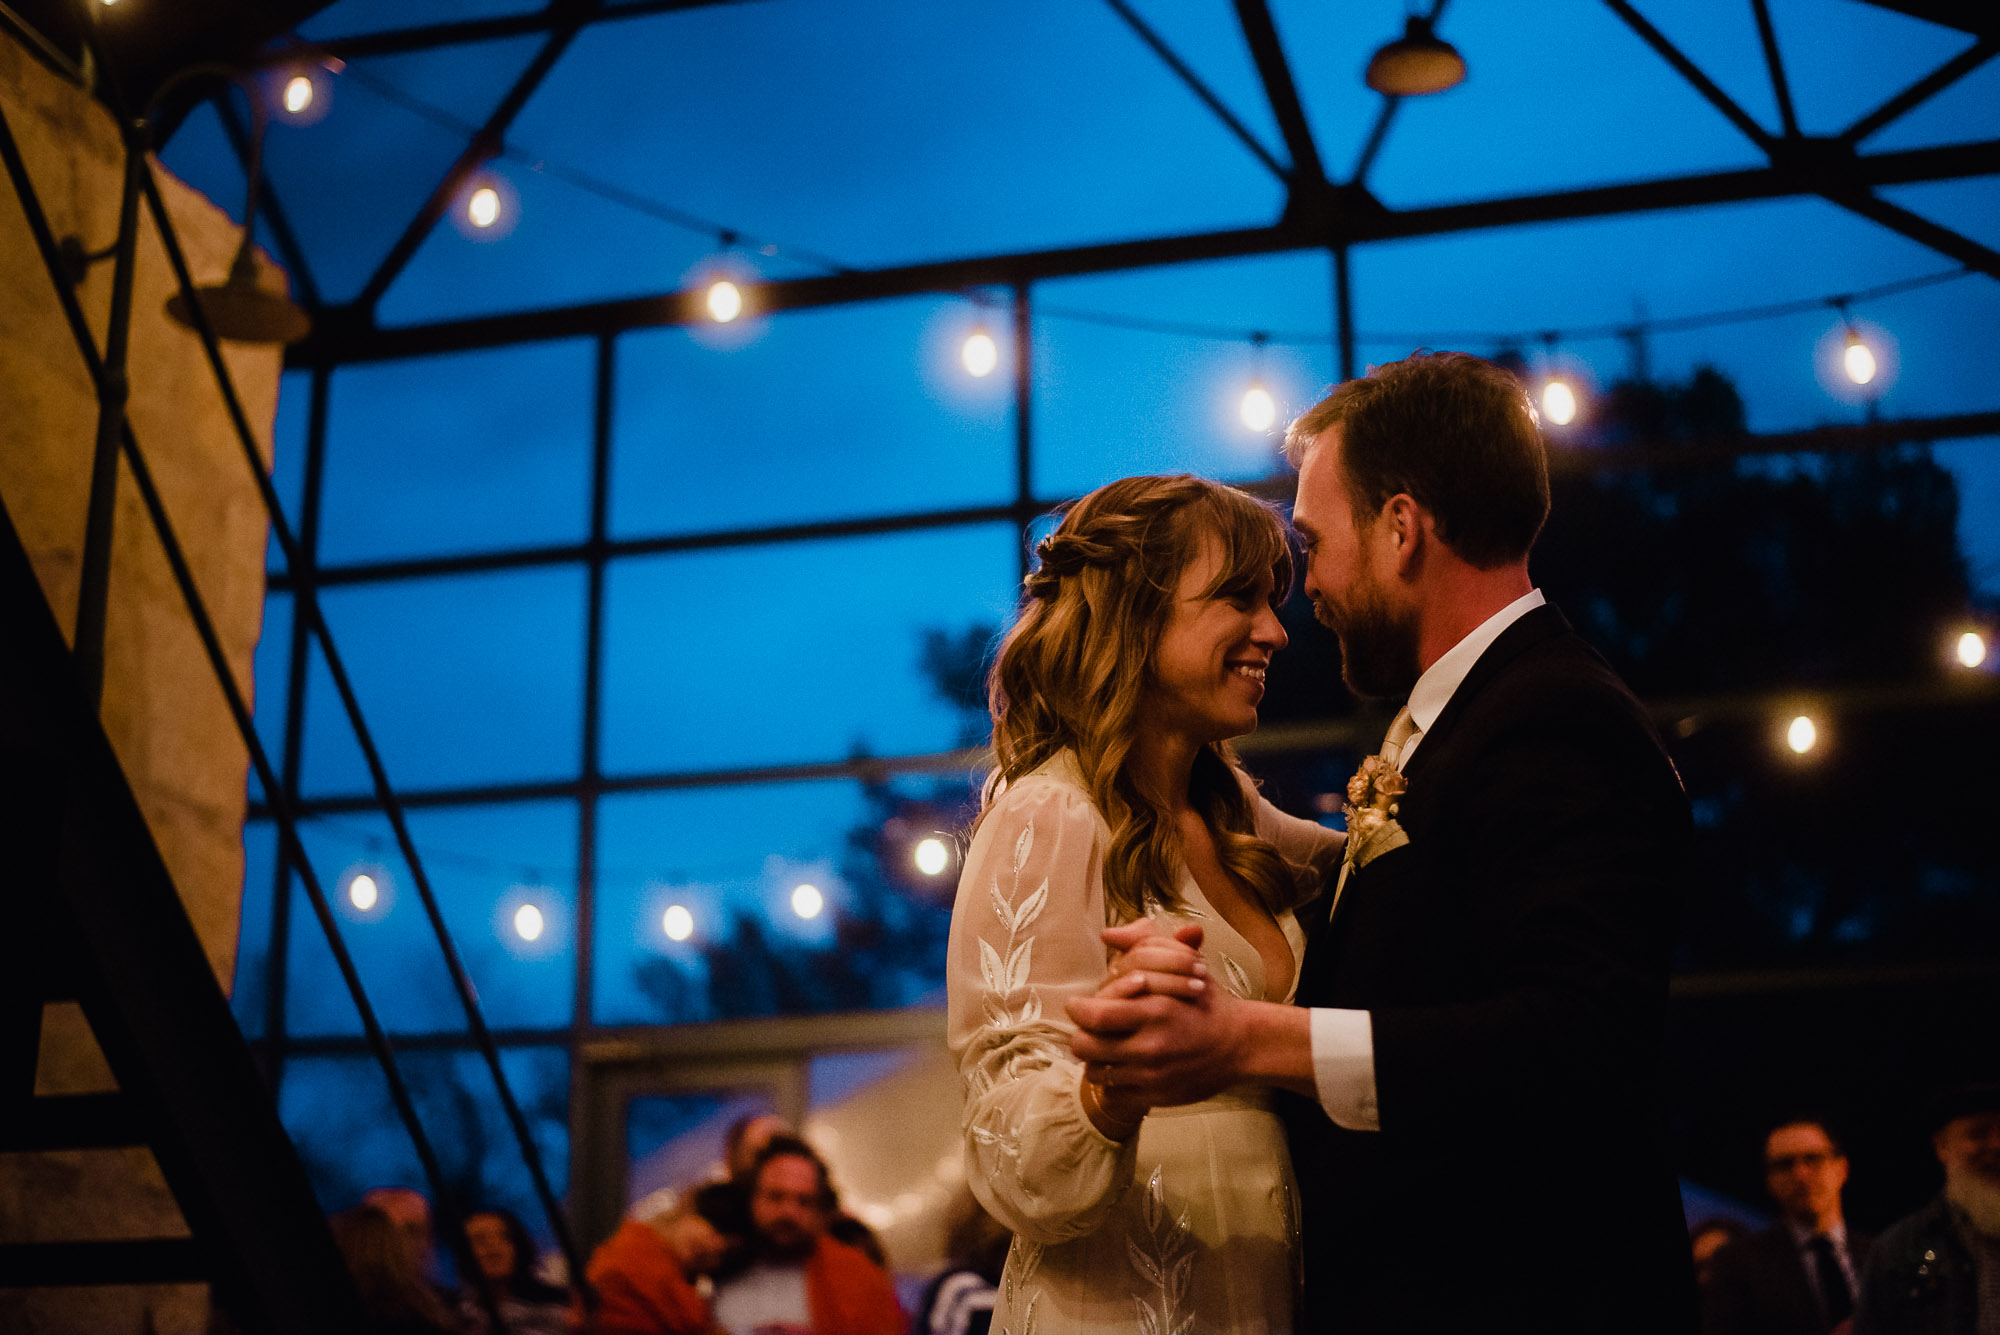 austin documentary wedding photographer, plant at kyle wedding photography, first dance photos in natural light